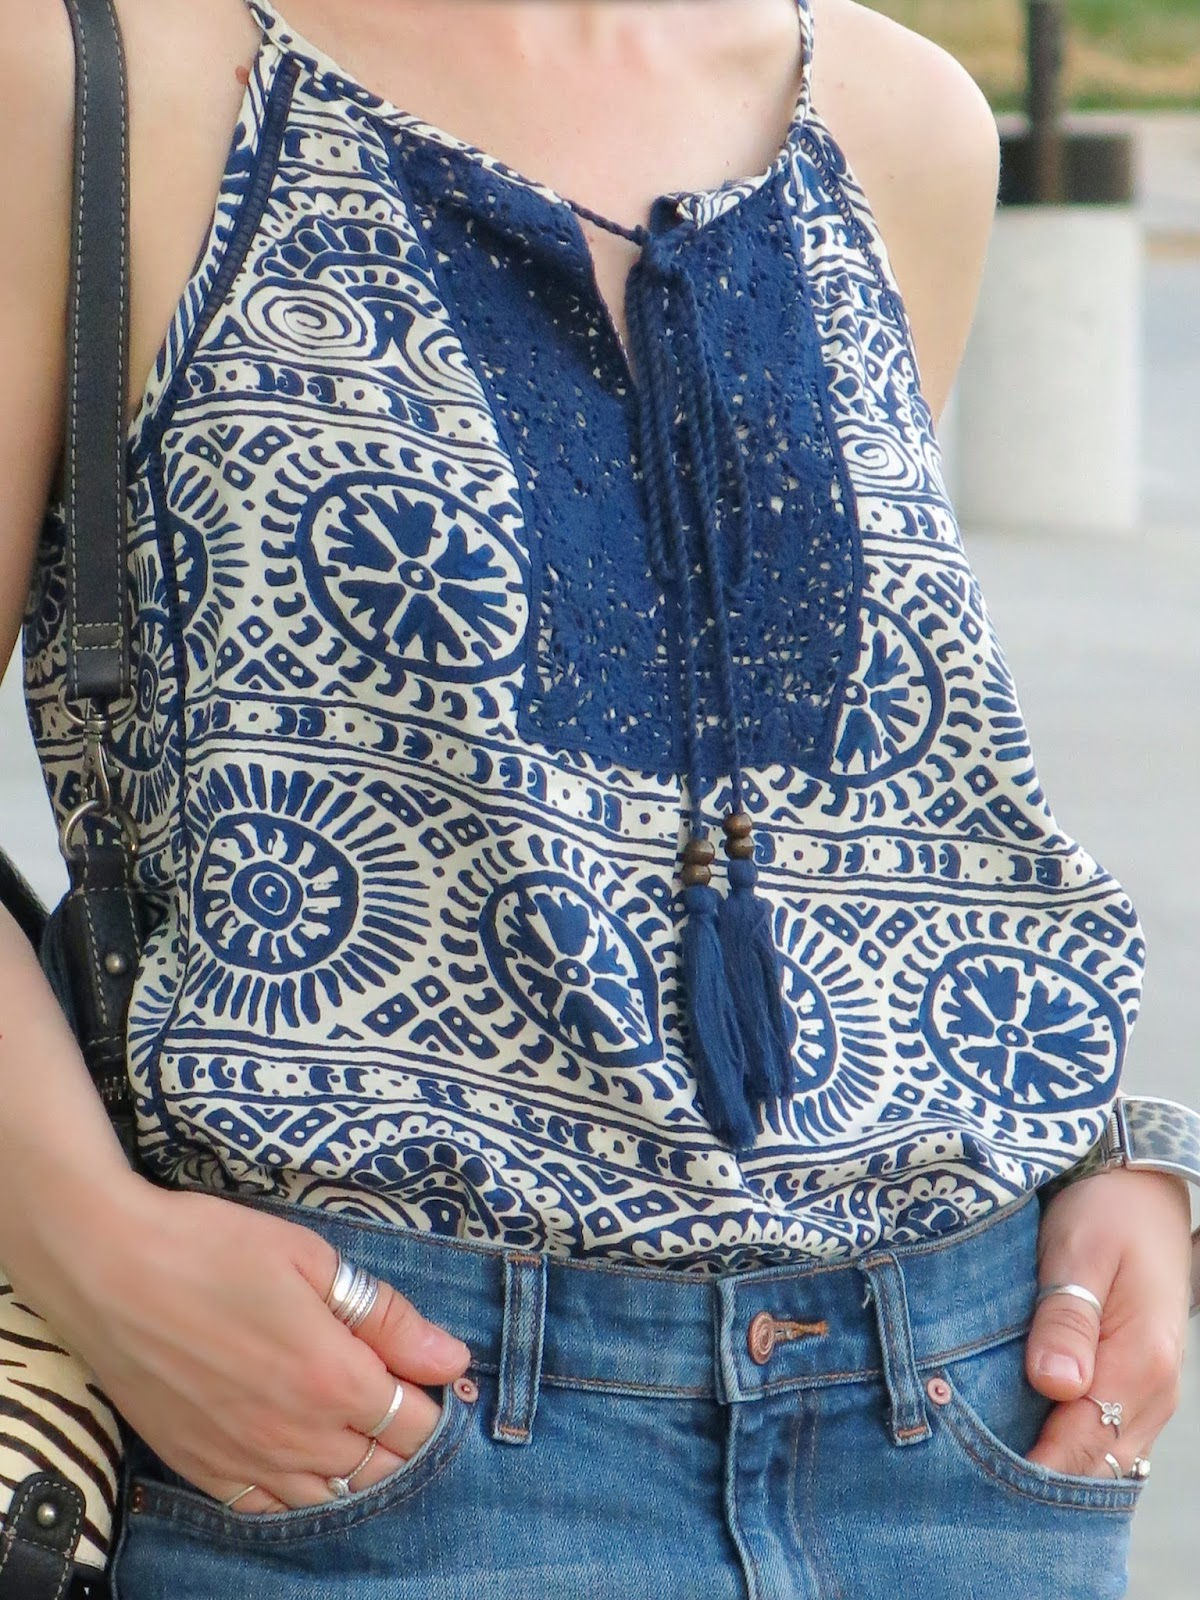 peasant-style patterned camisole